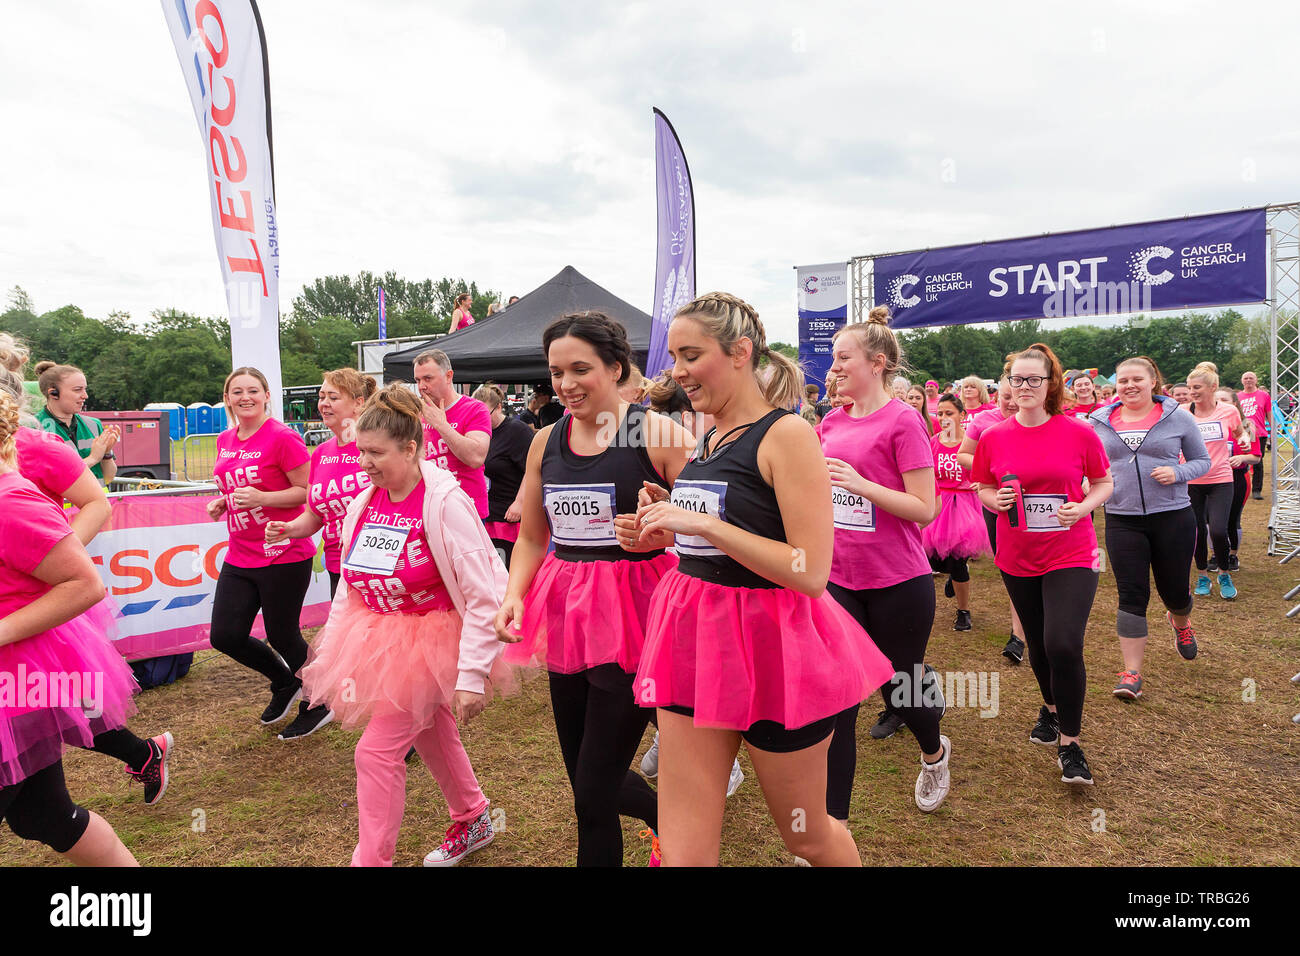 Warrington, UK. 2nd June 2019. Warrington, UK. 2nd June 2019. Race for Life 2019, Warrington, in aid of Cancer Research Credit Credit: John Hopkins/Alamy Live News - Stock Image